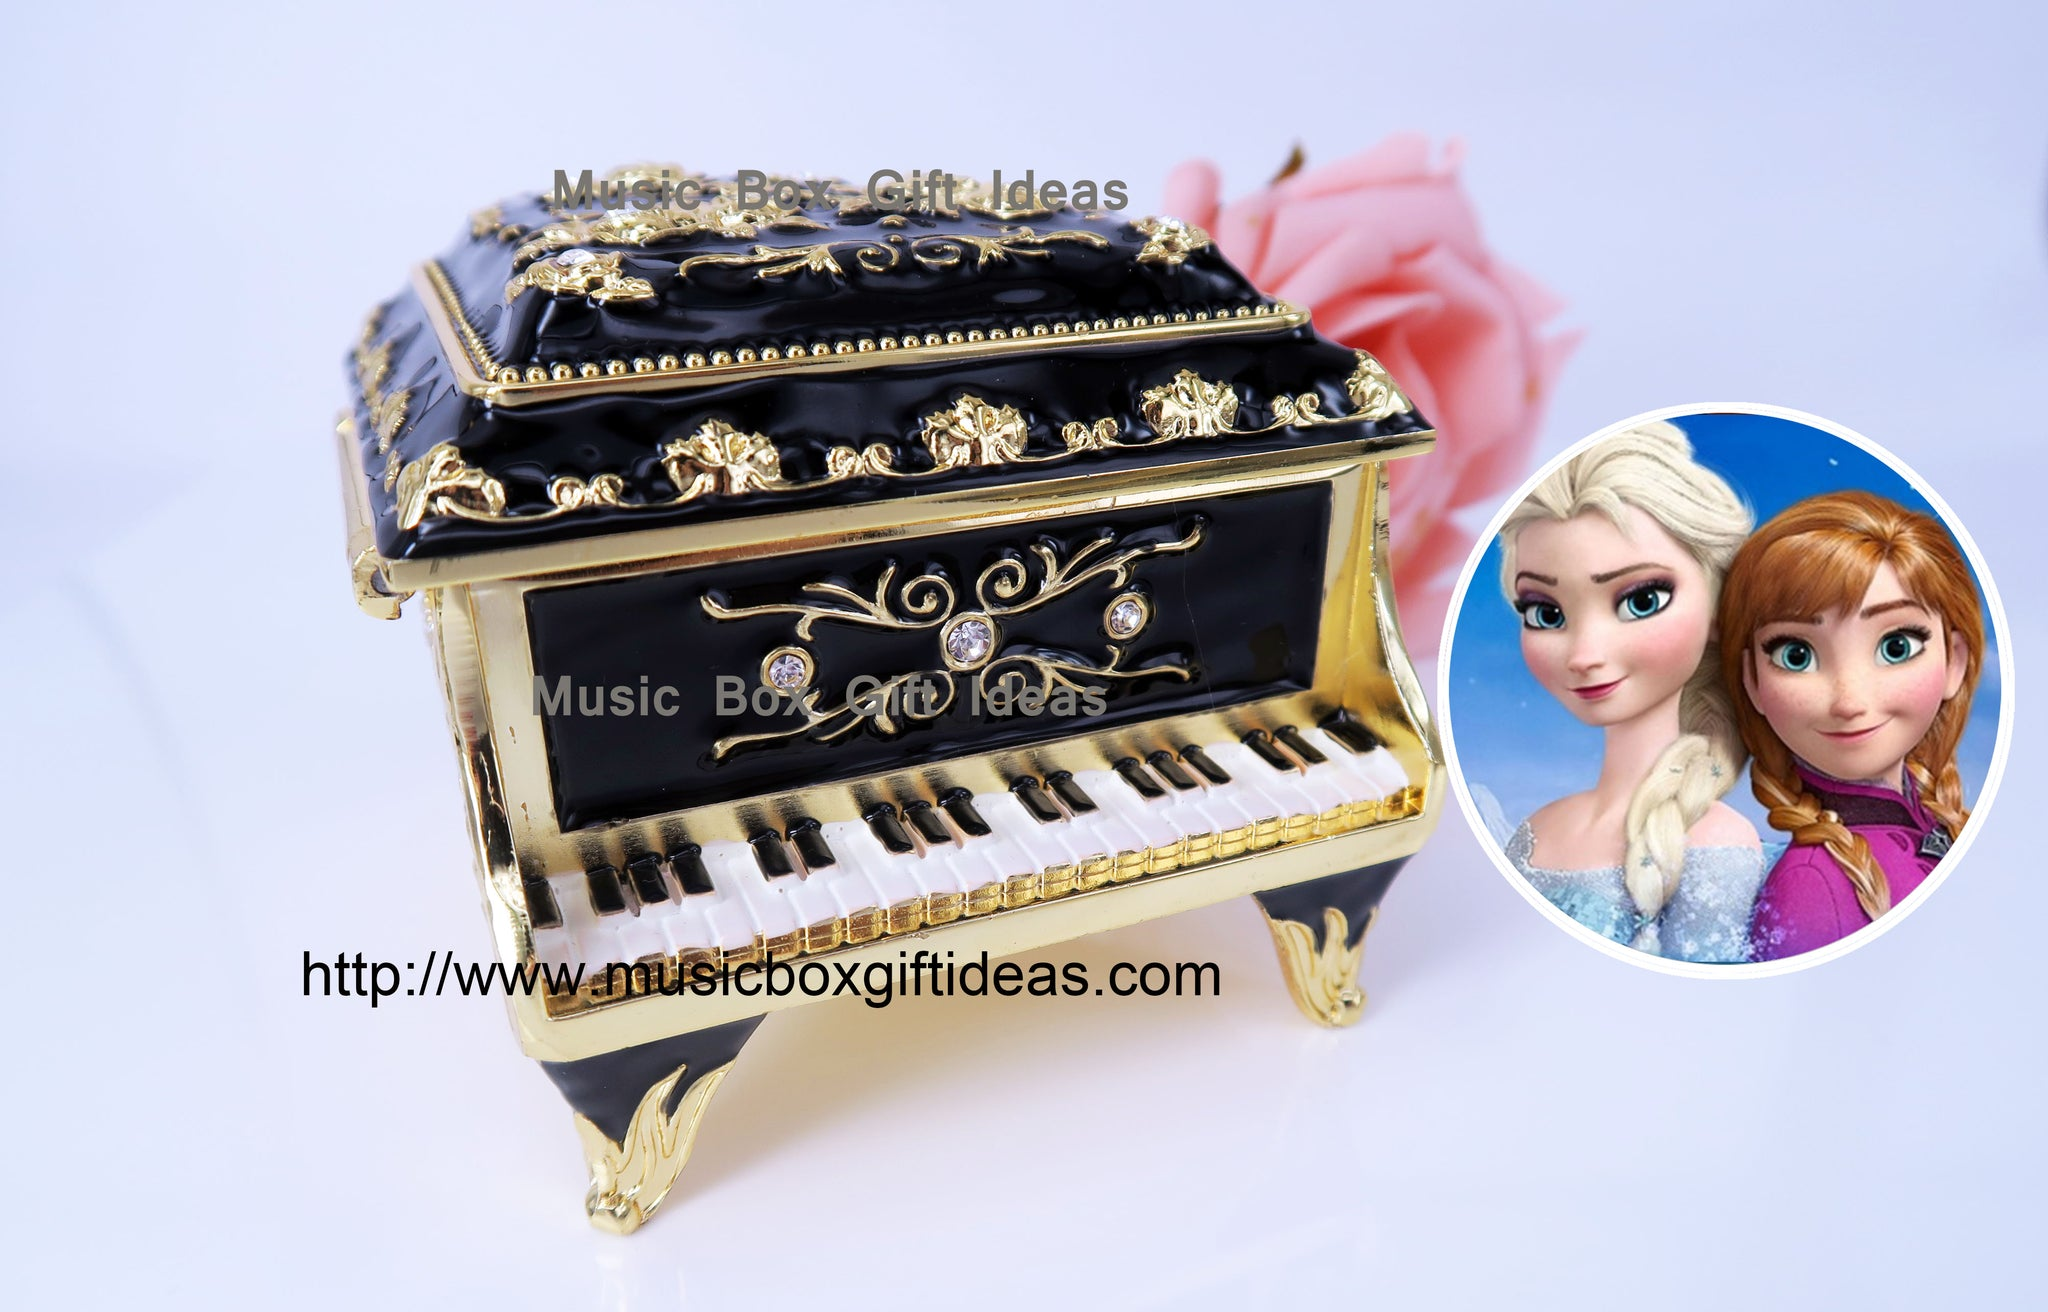 Piano Jewelry Music Box Frozen Let It Go Sankyo 18-Note Clockwork Gift - Music Box Gift Ideas